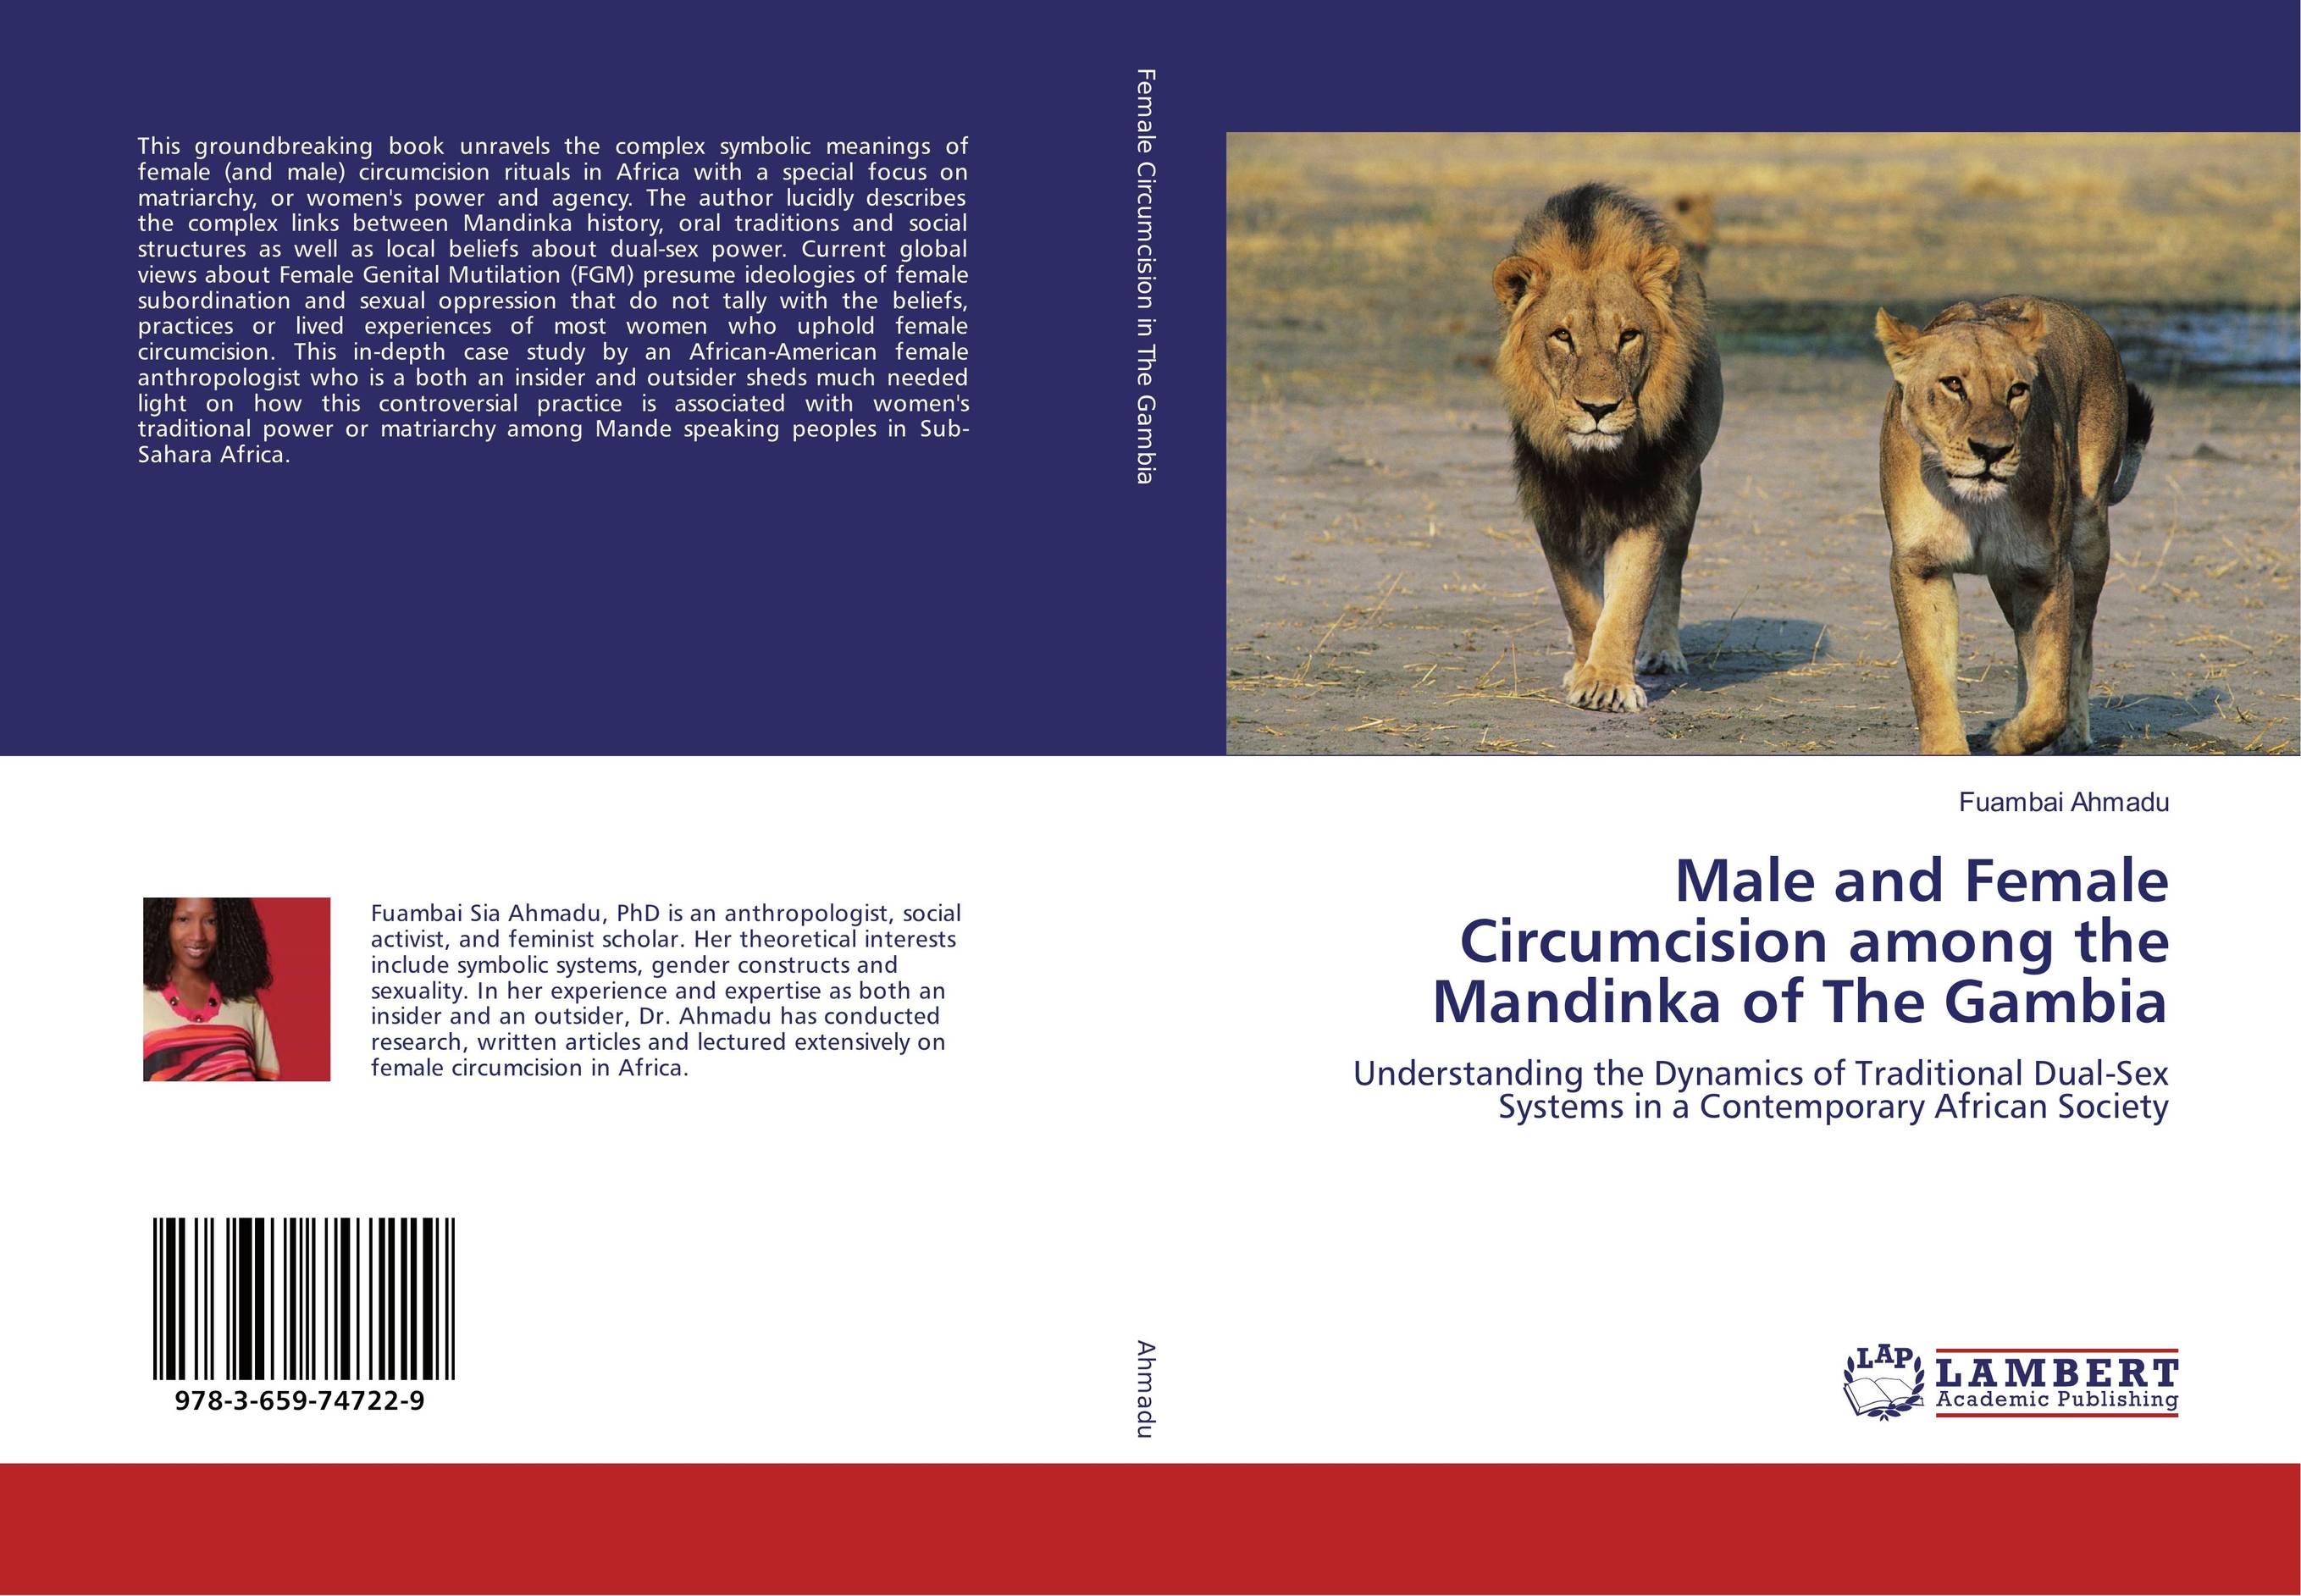 Male and Female Circumcision among the Mandinka of The Gambia circumcision